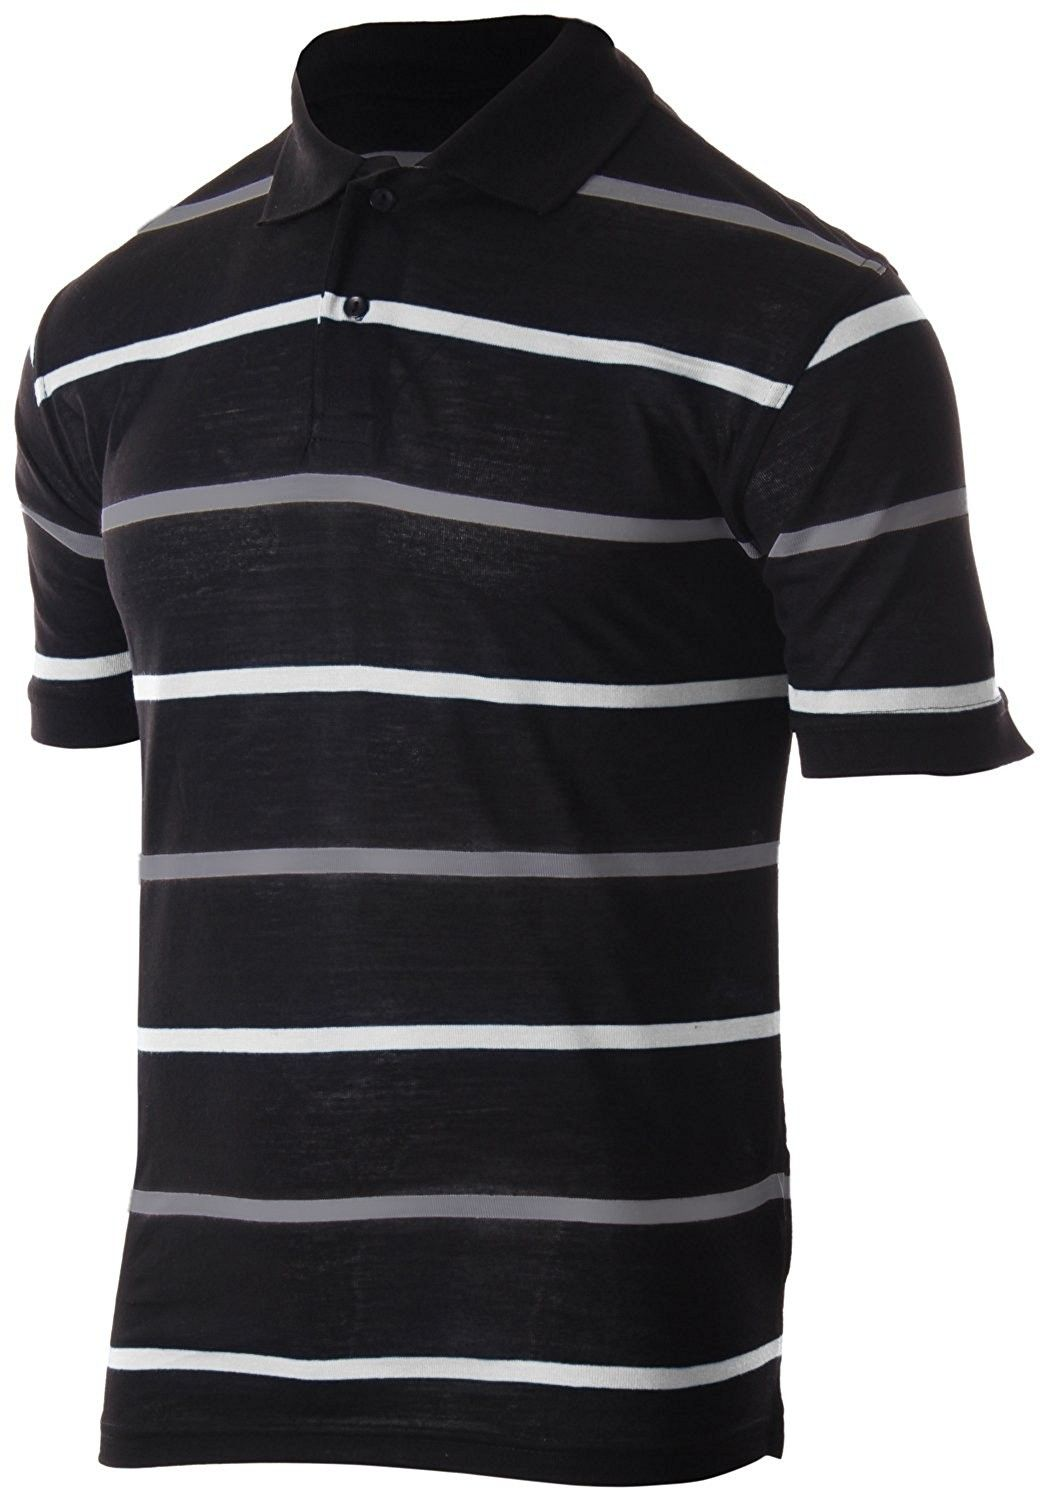 dd386c1de Men's Classic Fit Striped Polo T-Shirt Short Sleeve (Many Colors Available)  - 1811 - White | Grey - C8180W30NEY,Men's Clothing, Shirts, Polos #men # clothing ...